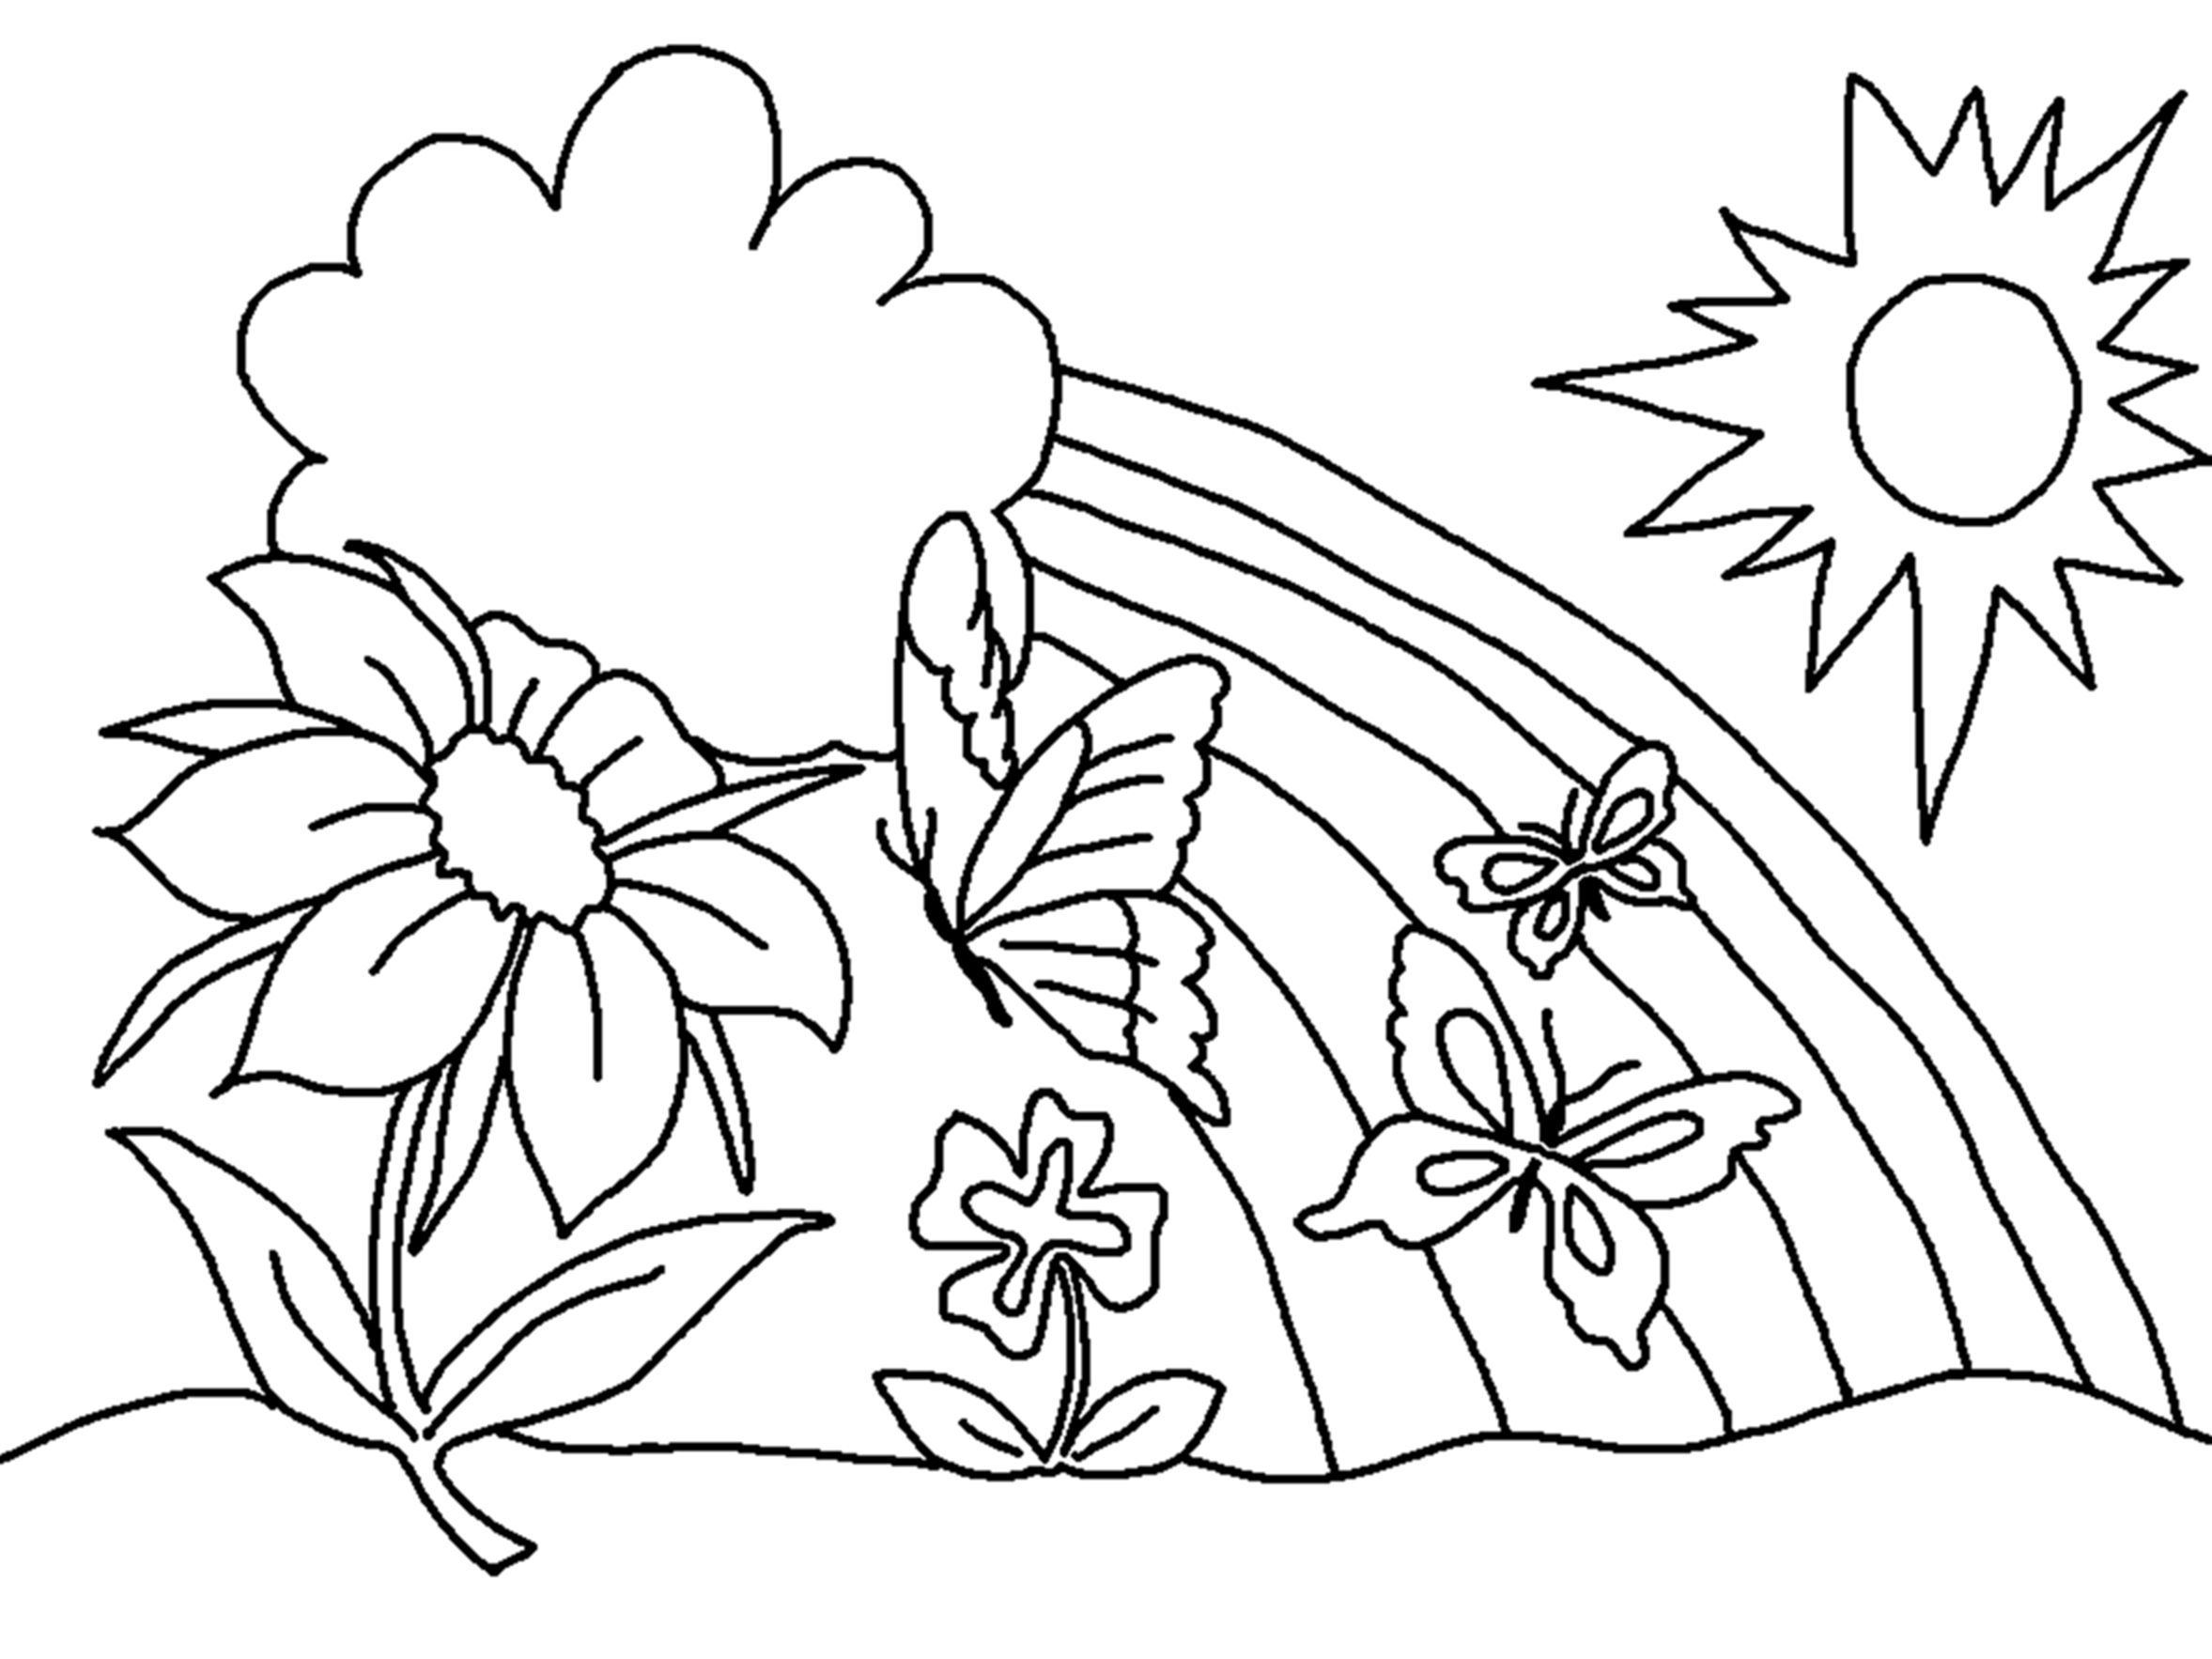 Free Printable Flower Coloring Pages For Kids Best | Coloring_Pages - Free Printable Flower Coloring Pages For Adults